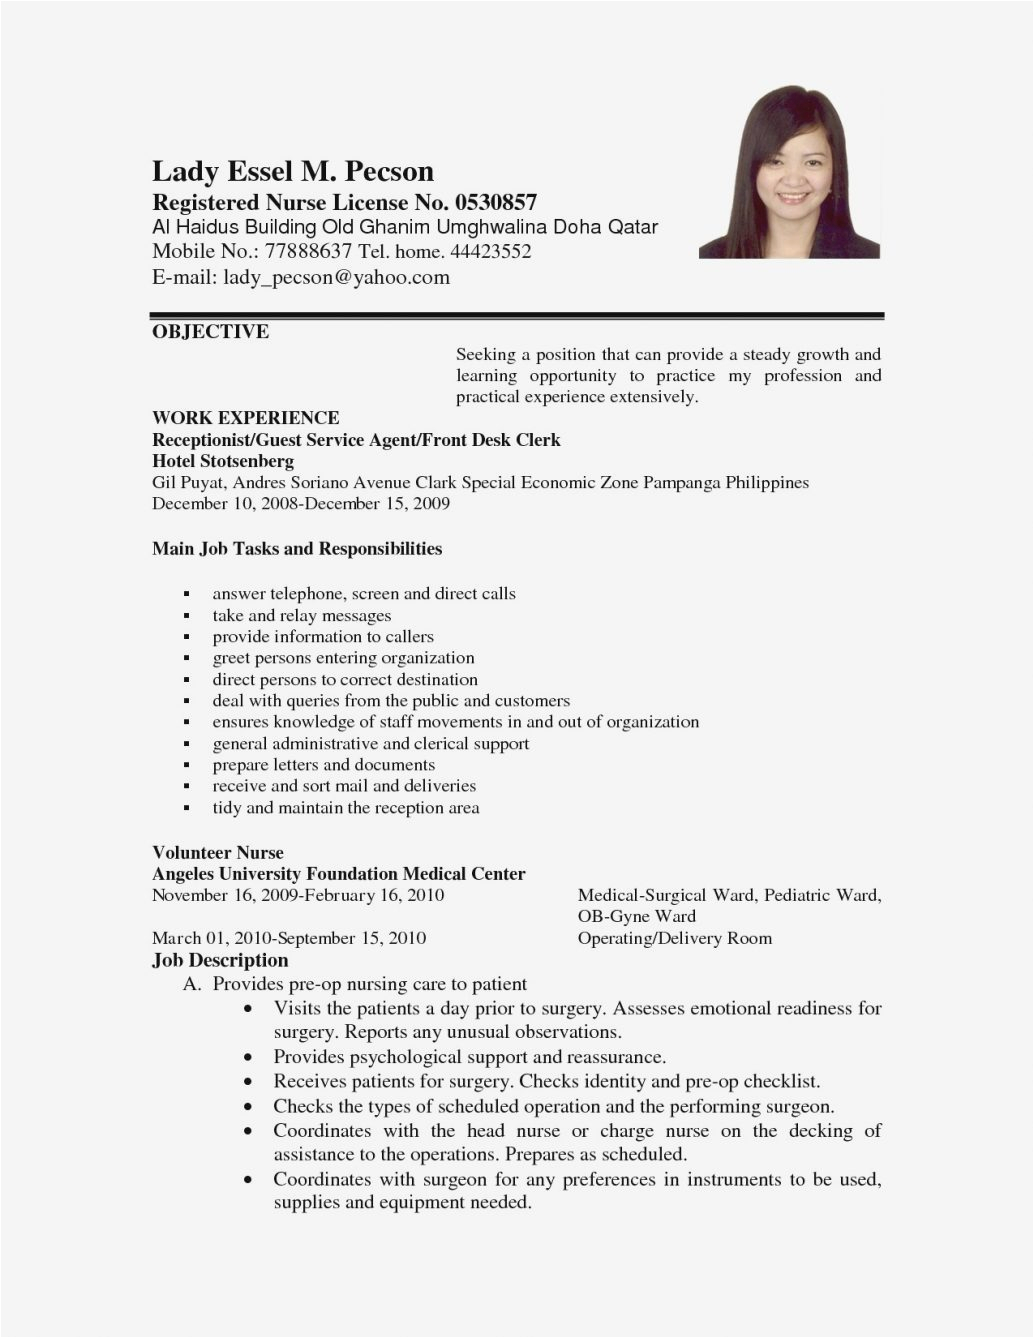 objective for resume job objective in resumes simple for resume fresh good objectives new post administrative assistant effective objecti customer service career call center general phlebotomist teac